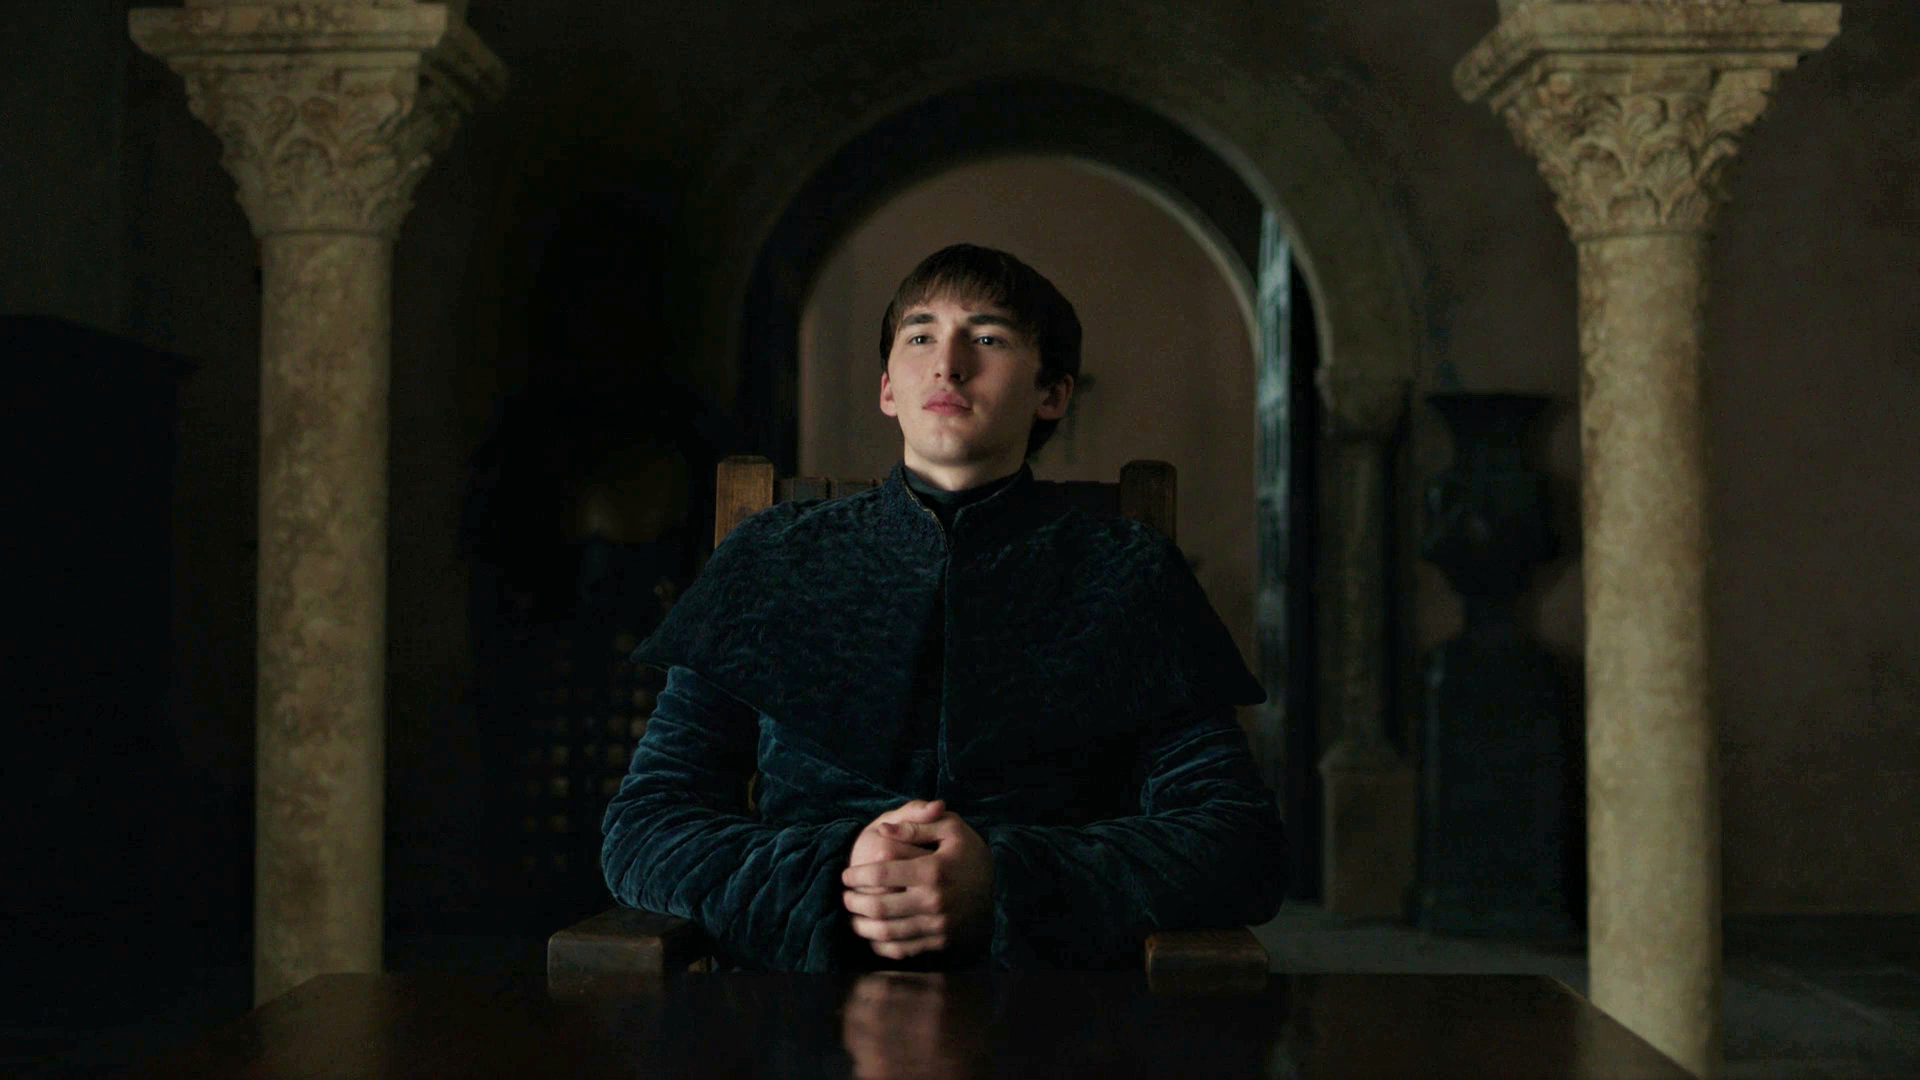 Bran Stark King Red Keep King's Landing Season 8 806 Iron Throne